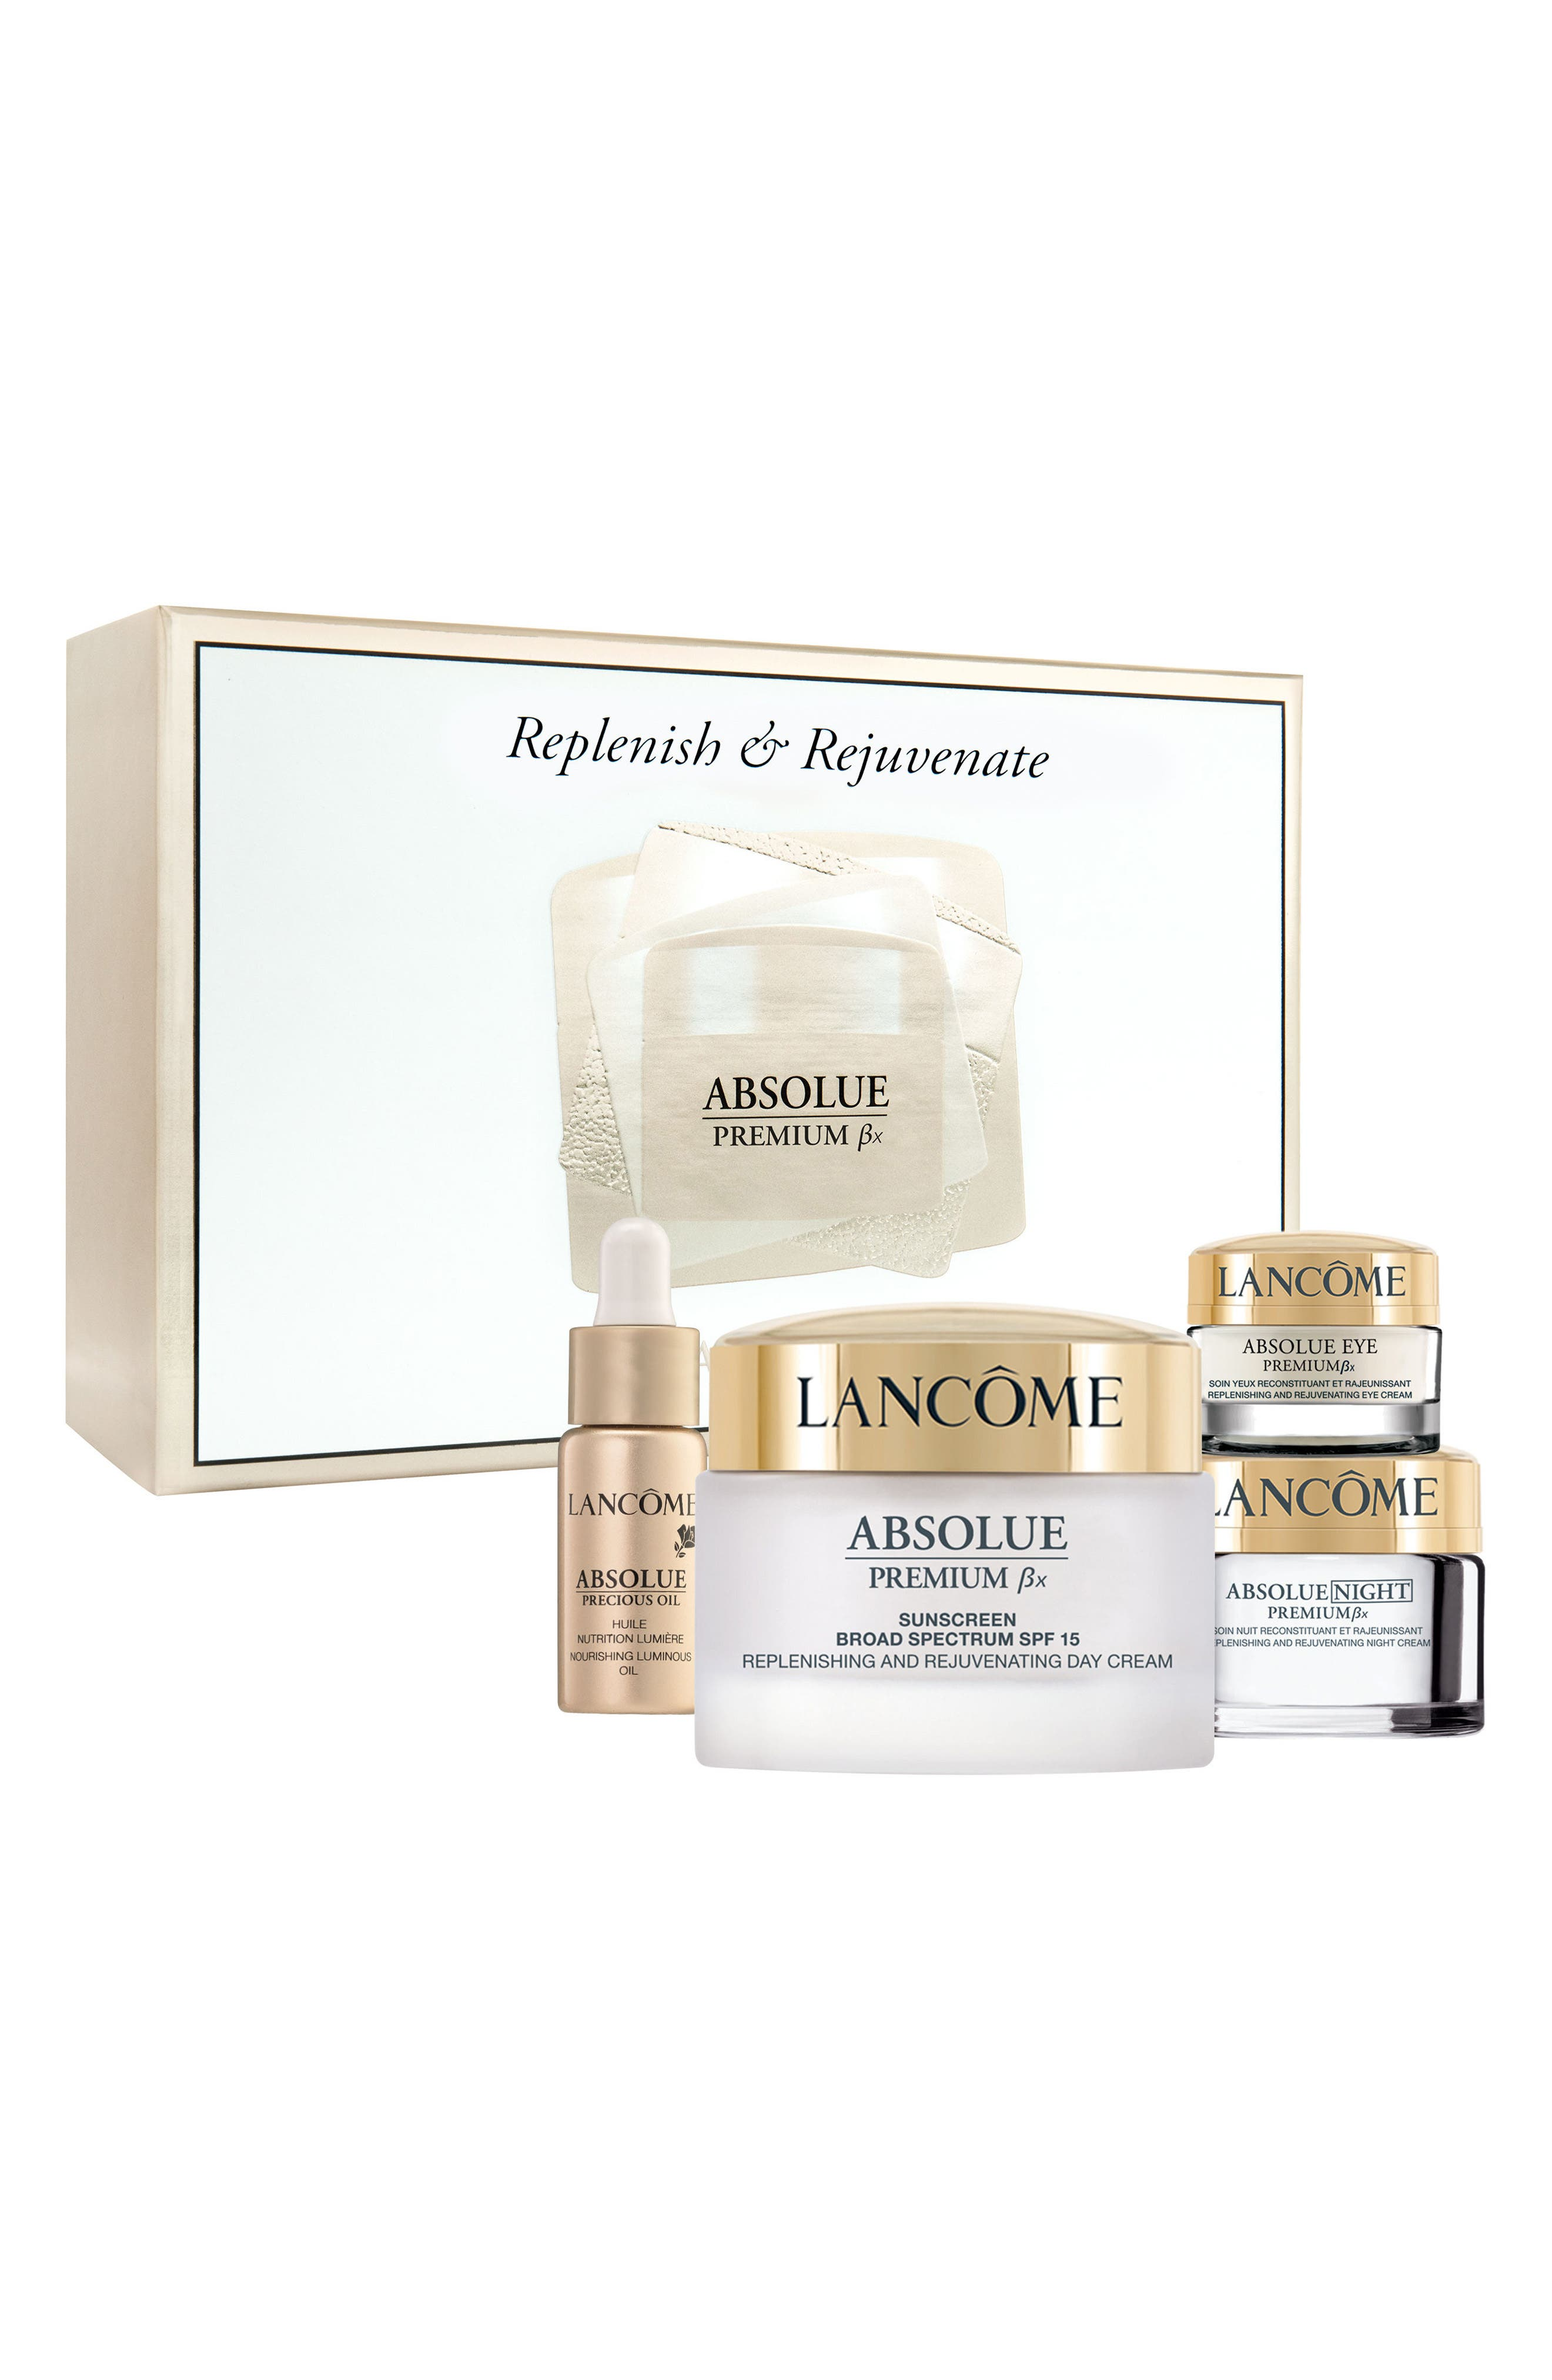 Replenish & Rejuvenate Absolue Premium Bx Set,                             Main thumbnail 1, color,                             No Color